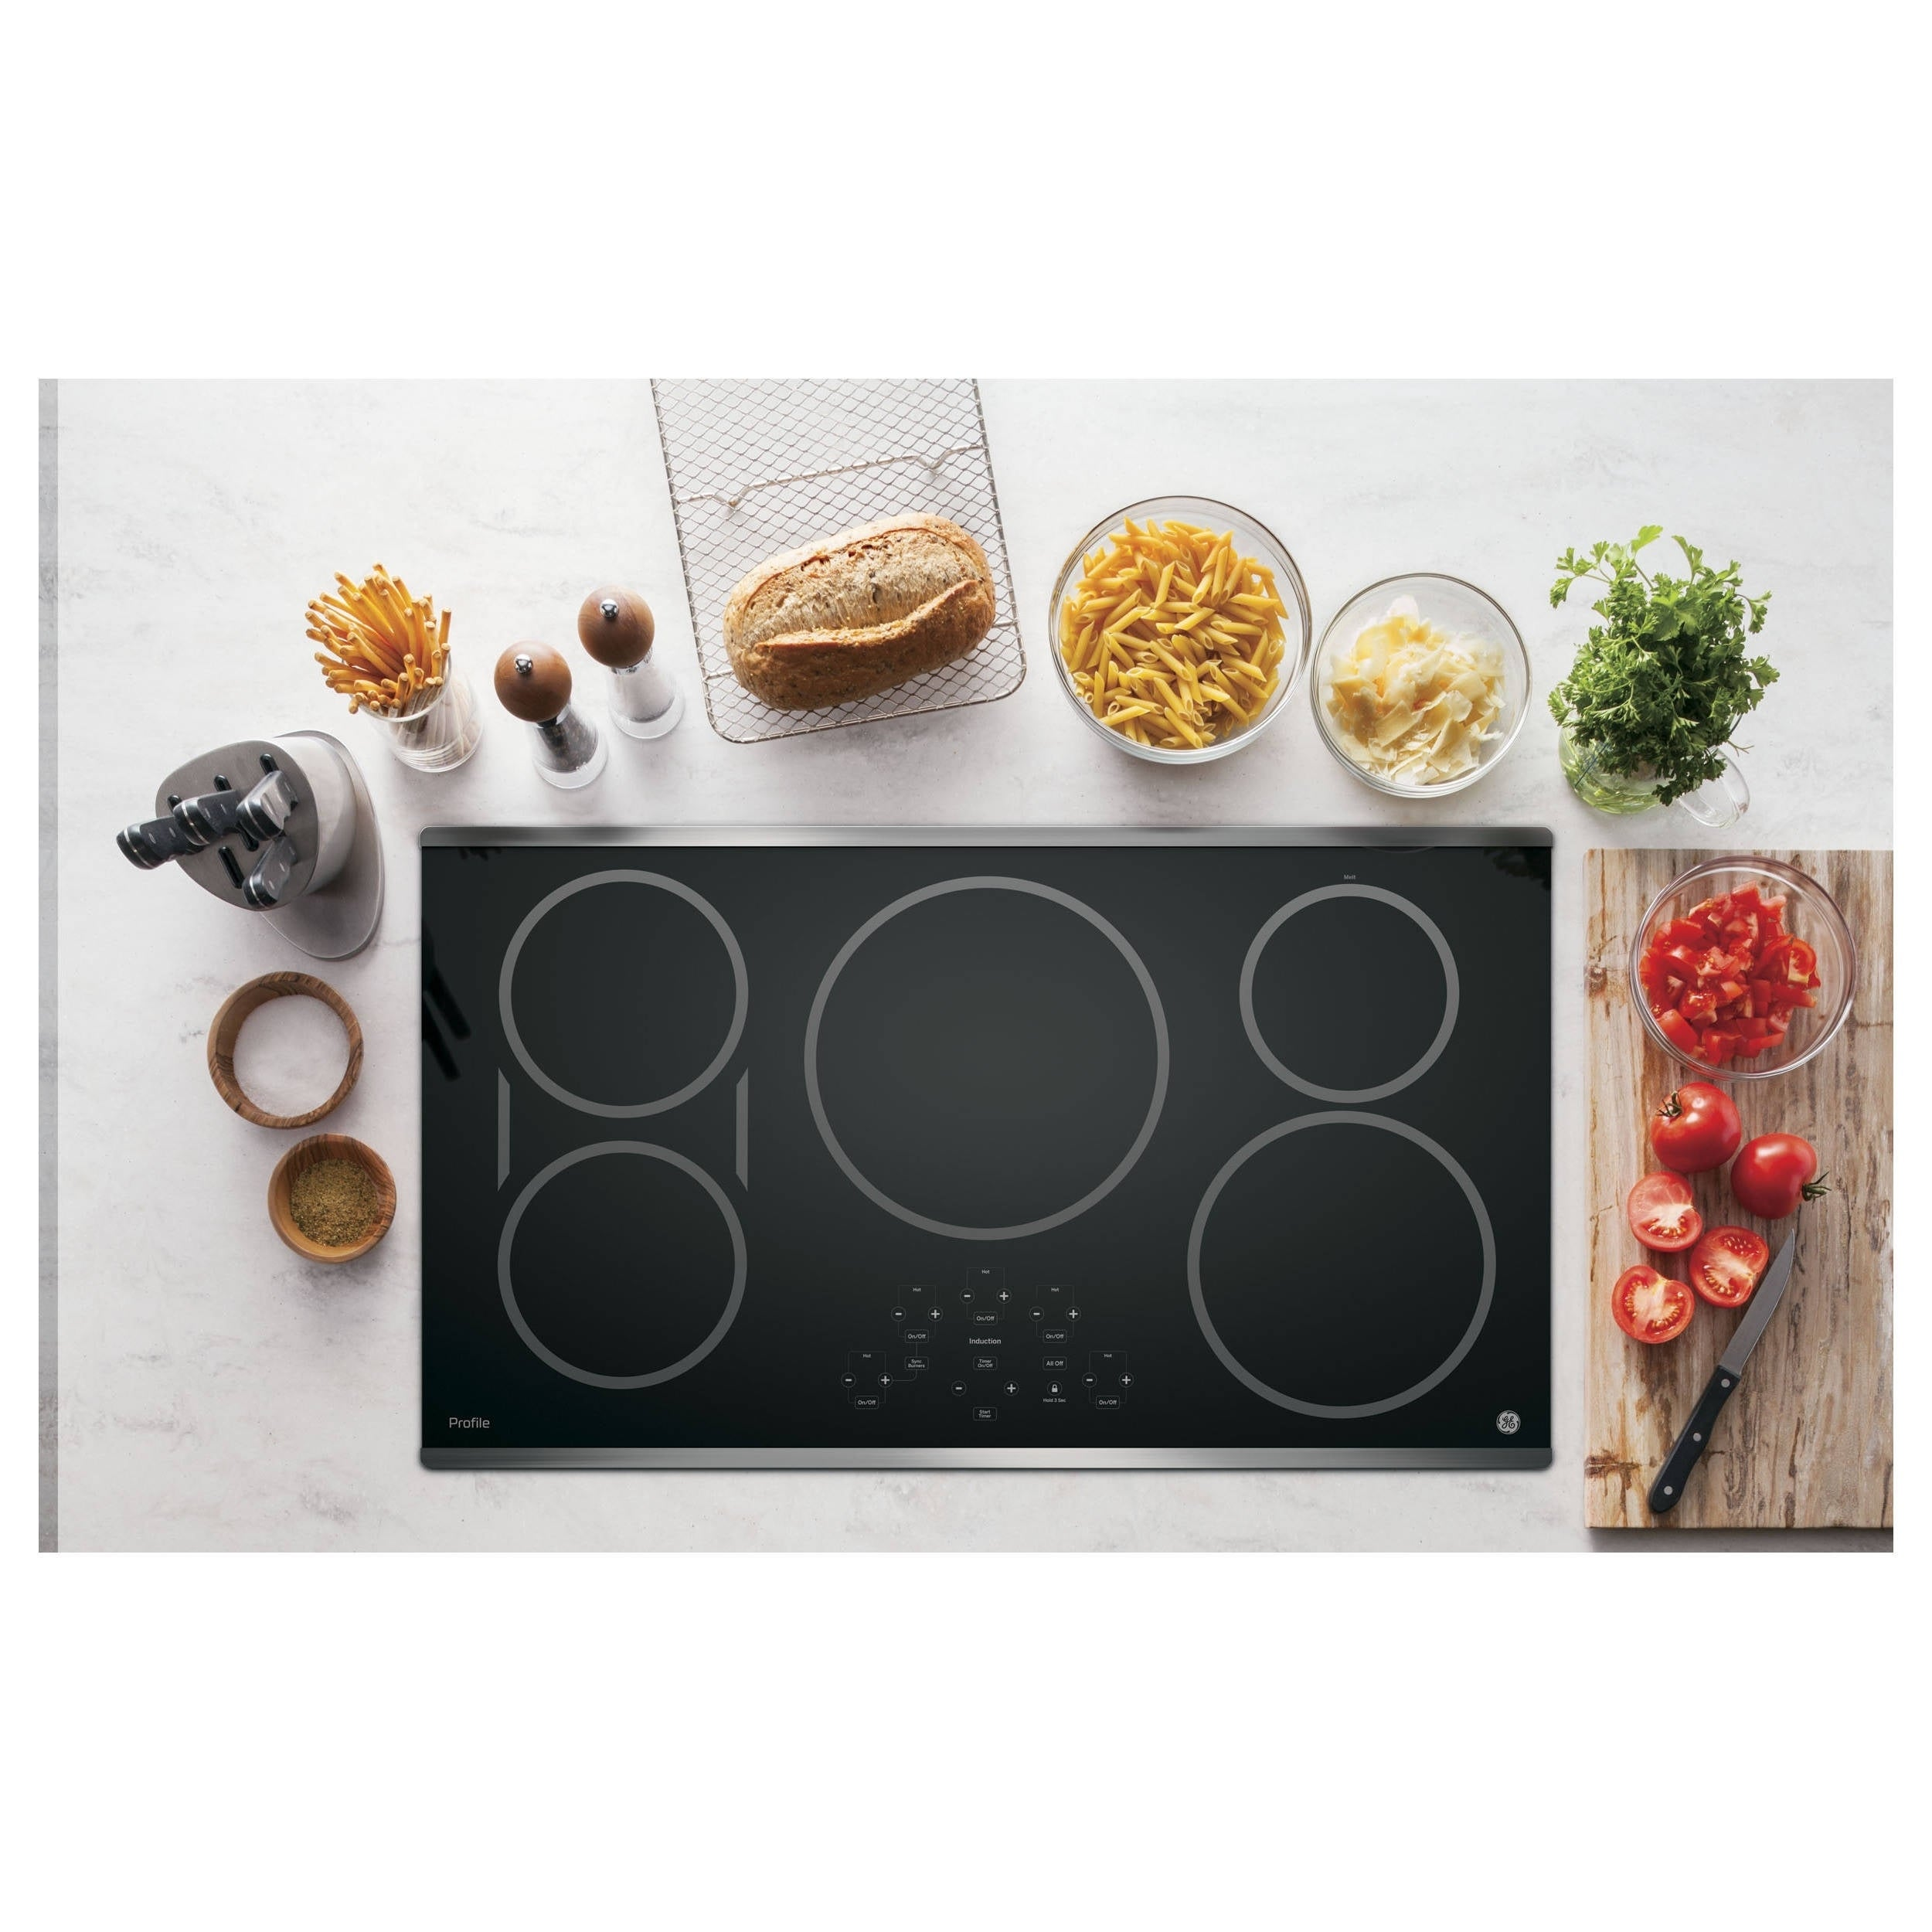 GE Profile Series 36-inch Built-in Touch Control Inductio...